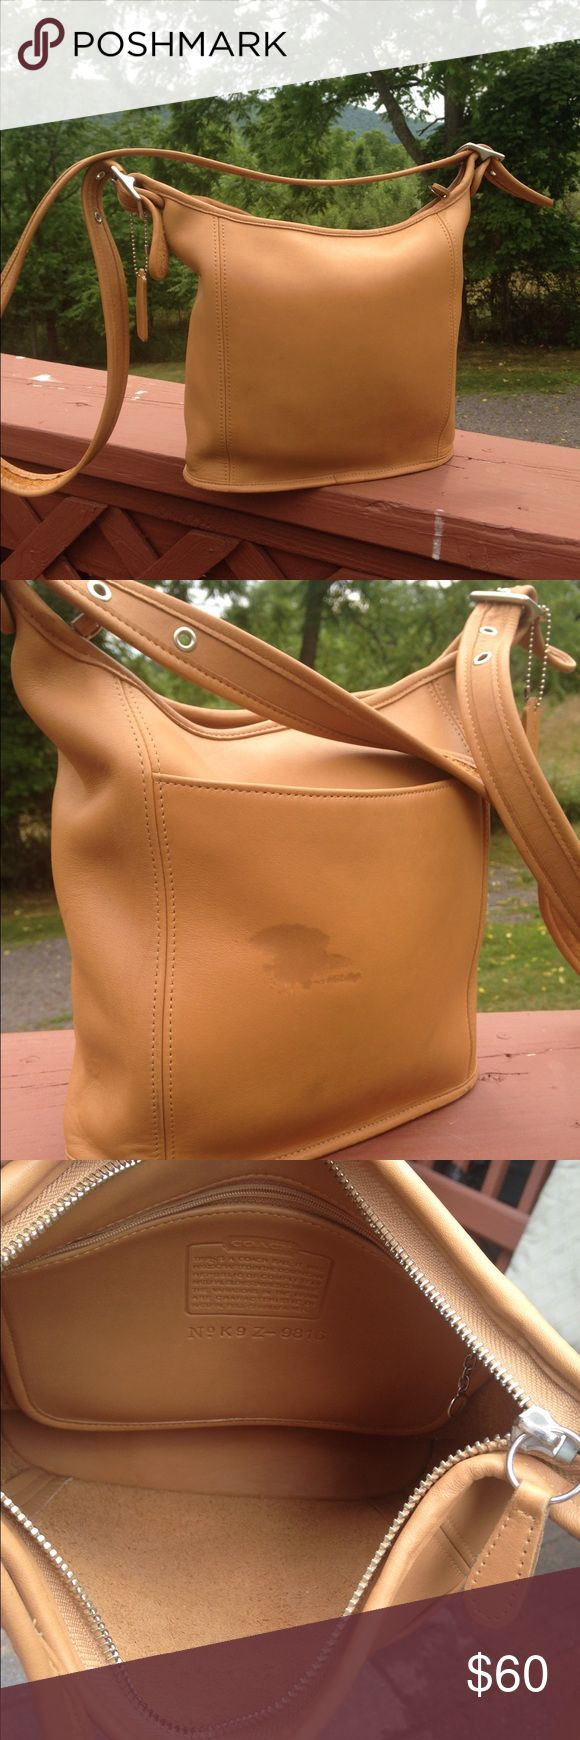 """Vintage Coach Camel Glove Leather Slim Duffle Cross Body handbag. Pre owned used condition. Outside of purse stain/scuff see picture.  Few minor scuffs here or there but purse generally in great condition. Creed# K9Z-9816. Made in Dominican Republic. Open pocket outside of purse.  Zipper pocket inside purse. Strap drop 22"""" purse size 9""""x9.5"""". Adjustable strap. Front pocket width 8"""".  Classic vintage coach bag!!! Color is so vintage!!! Coach Bags Crossbody Bags"""